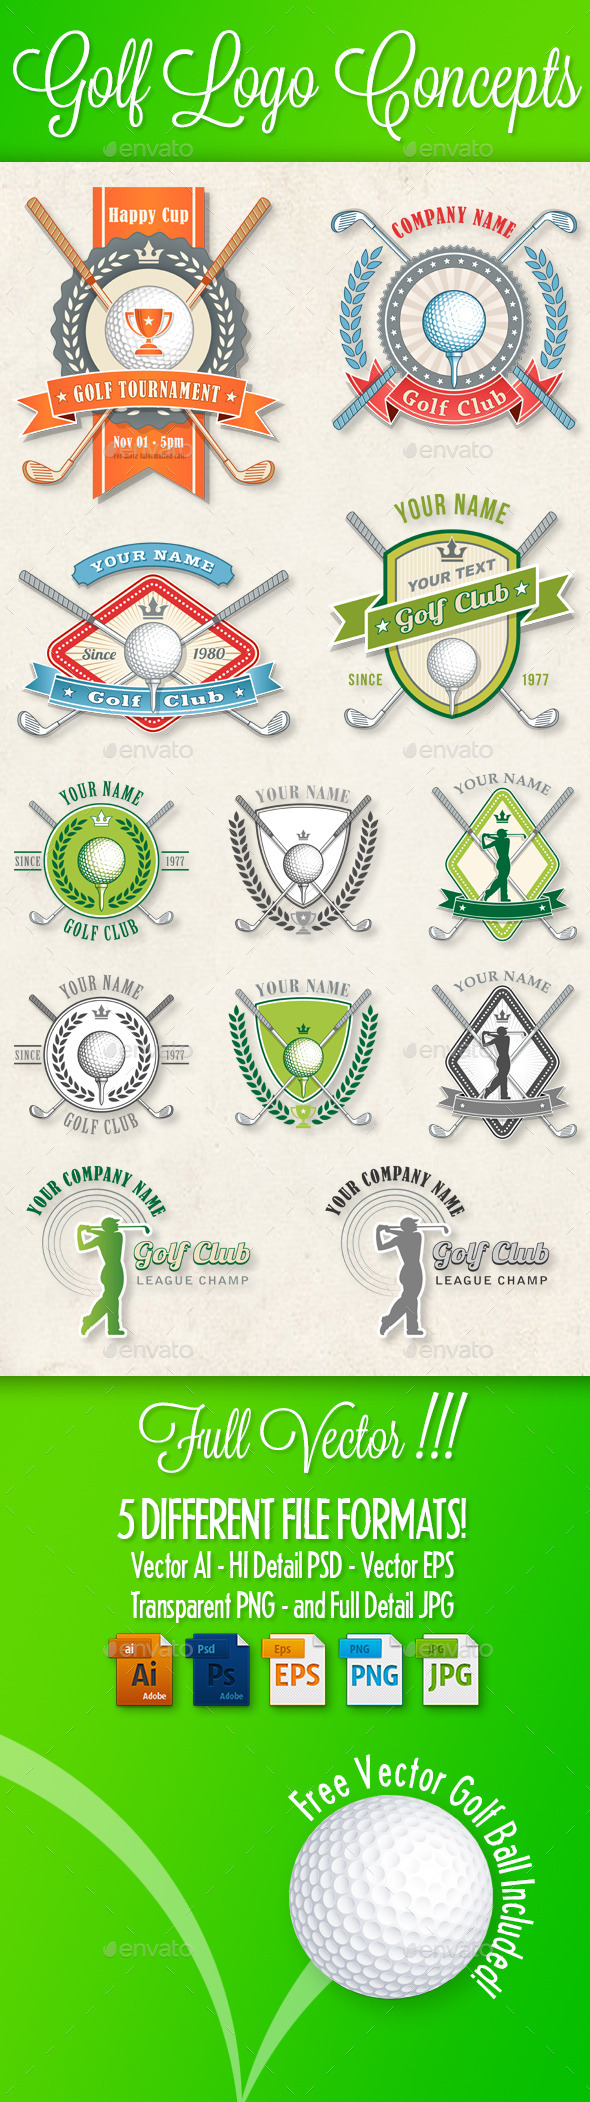 GraphicRiver Golf Logos and Concepts 10905718